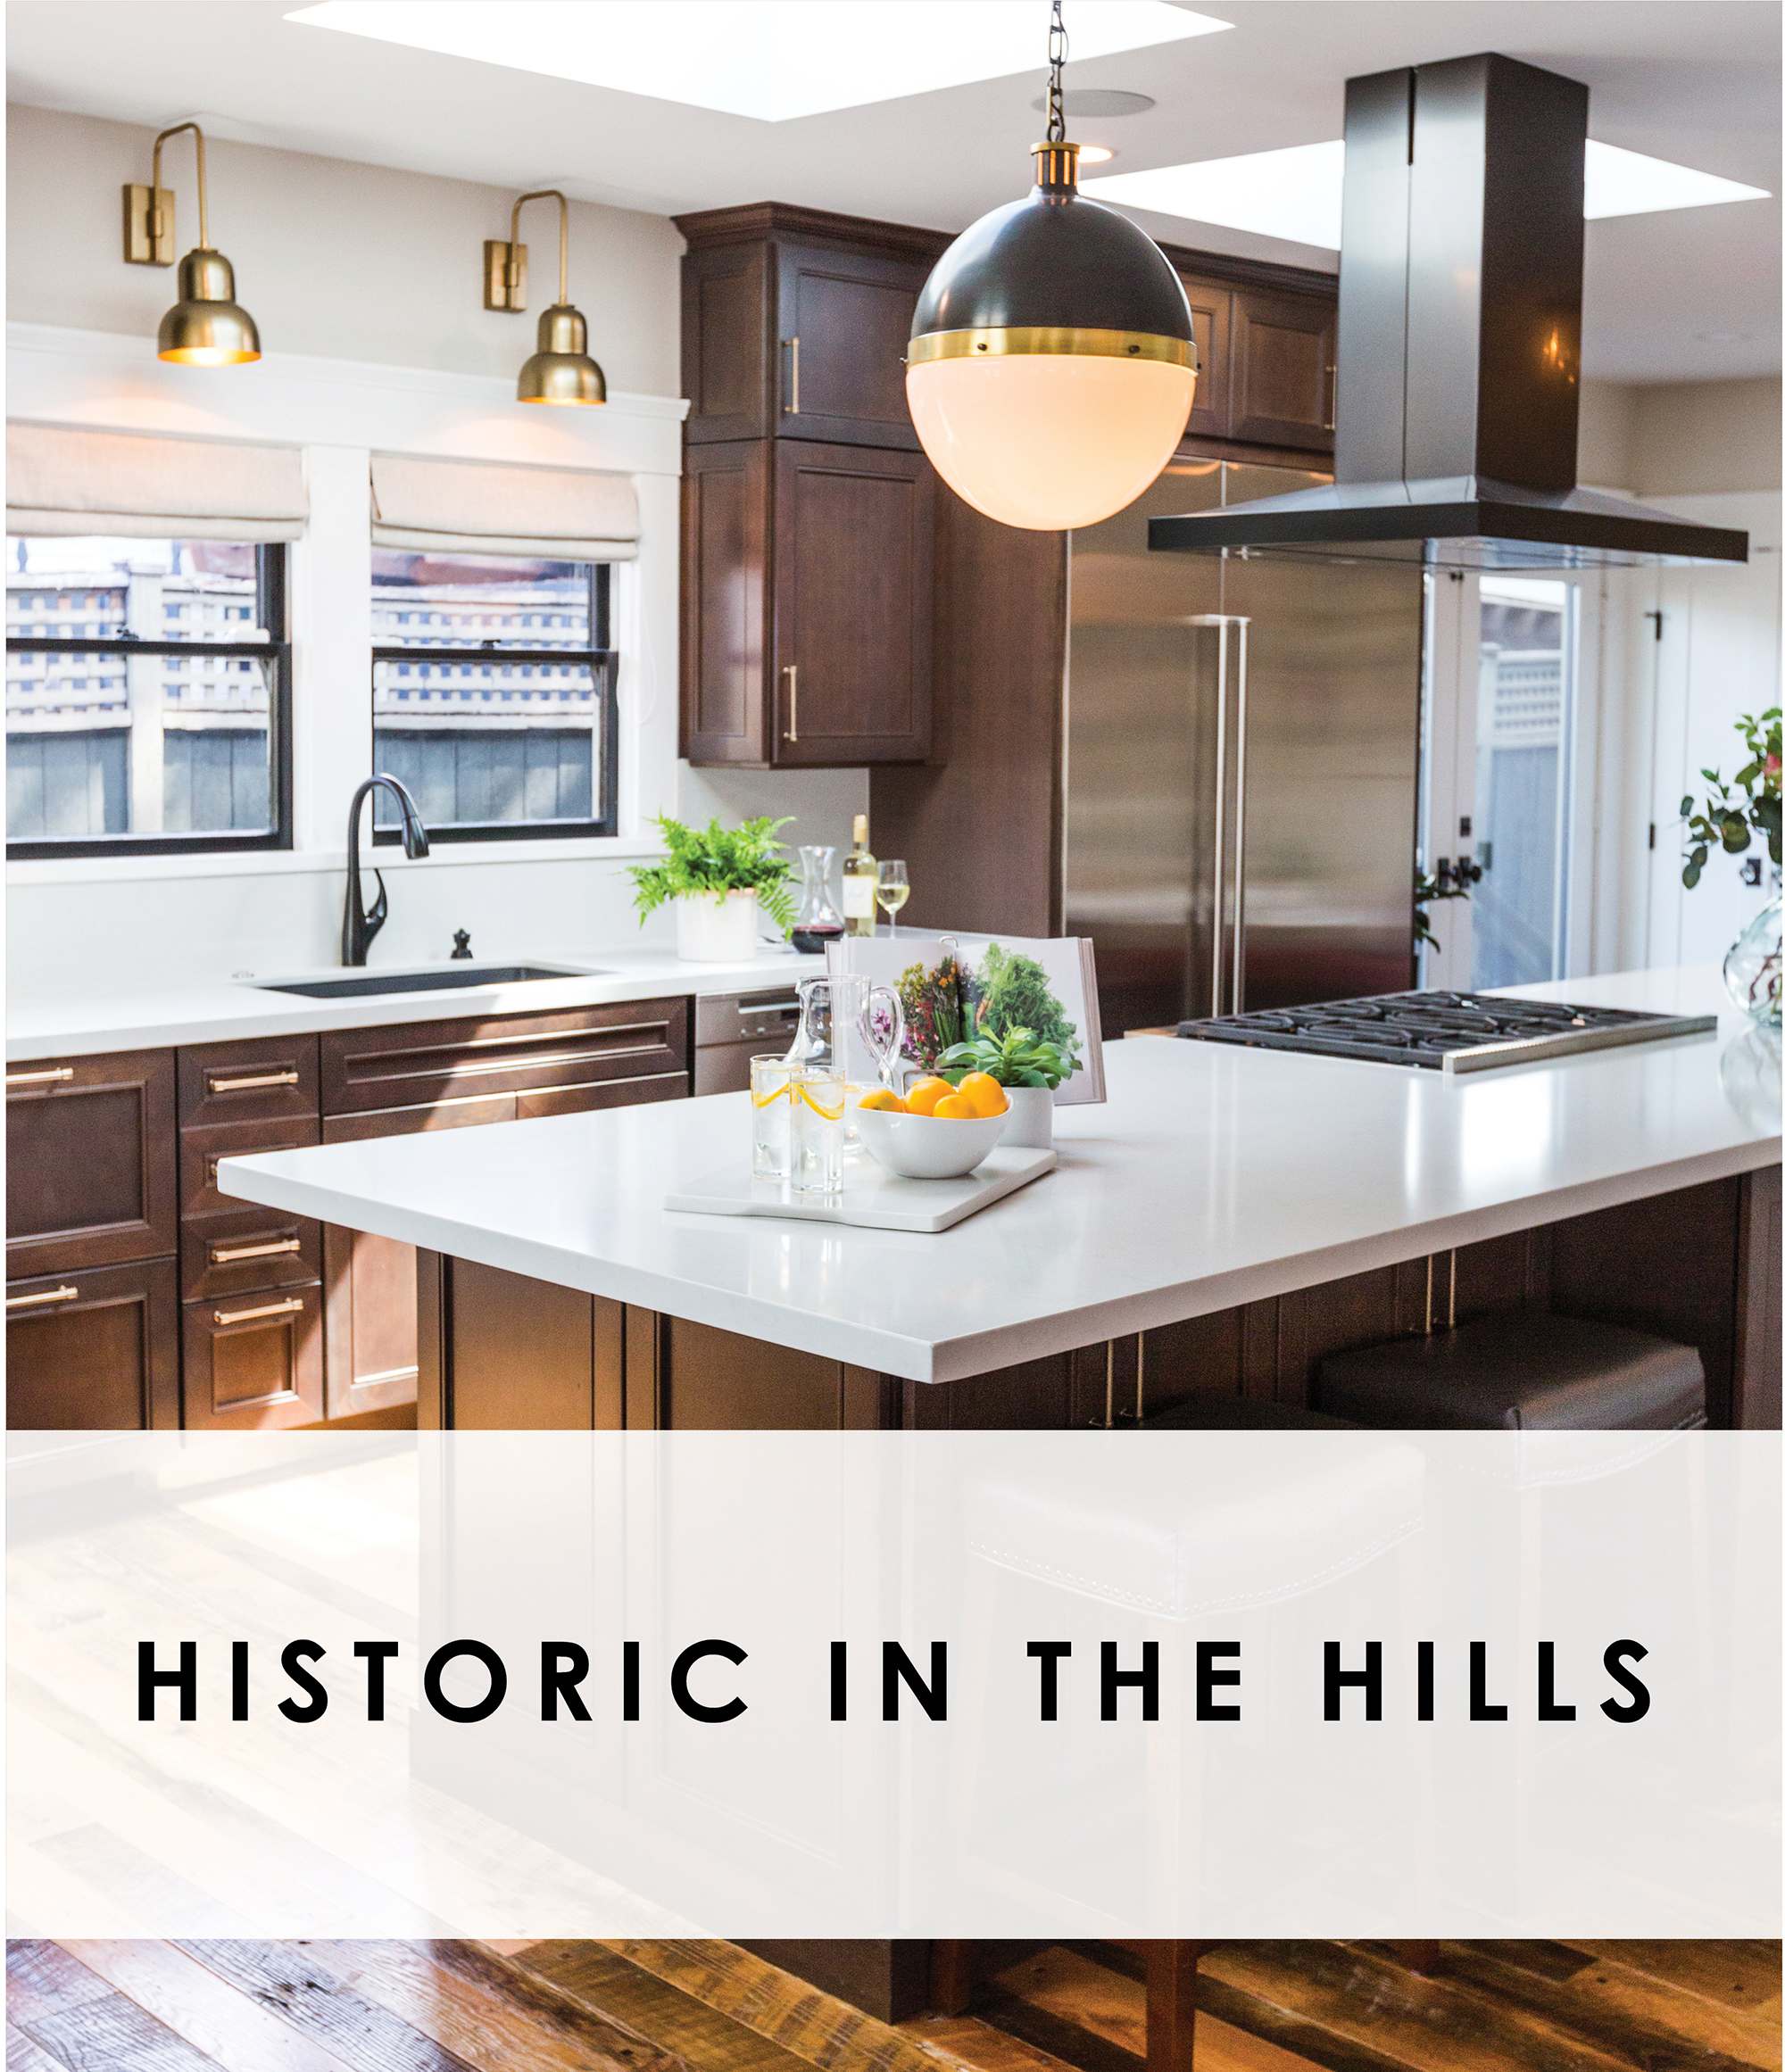 Historic in the Hills.jpg